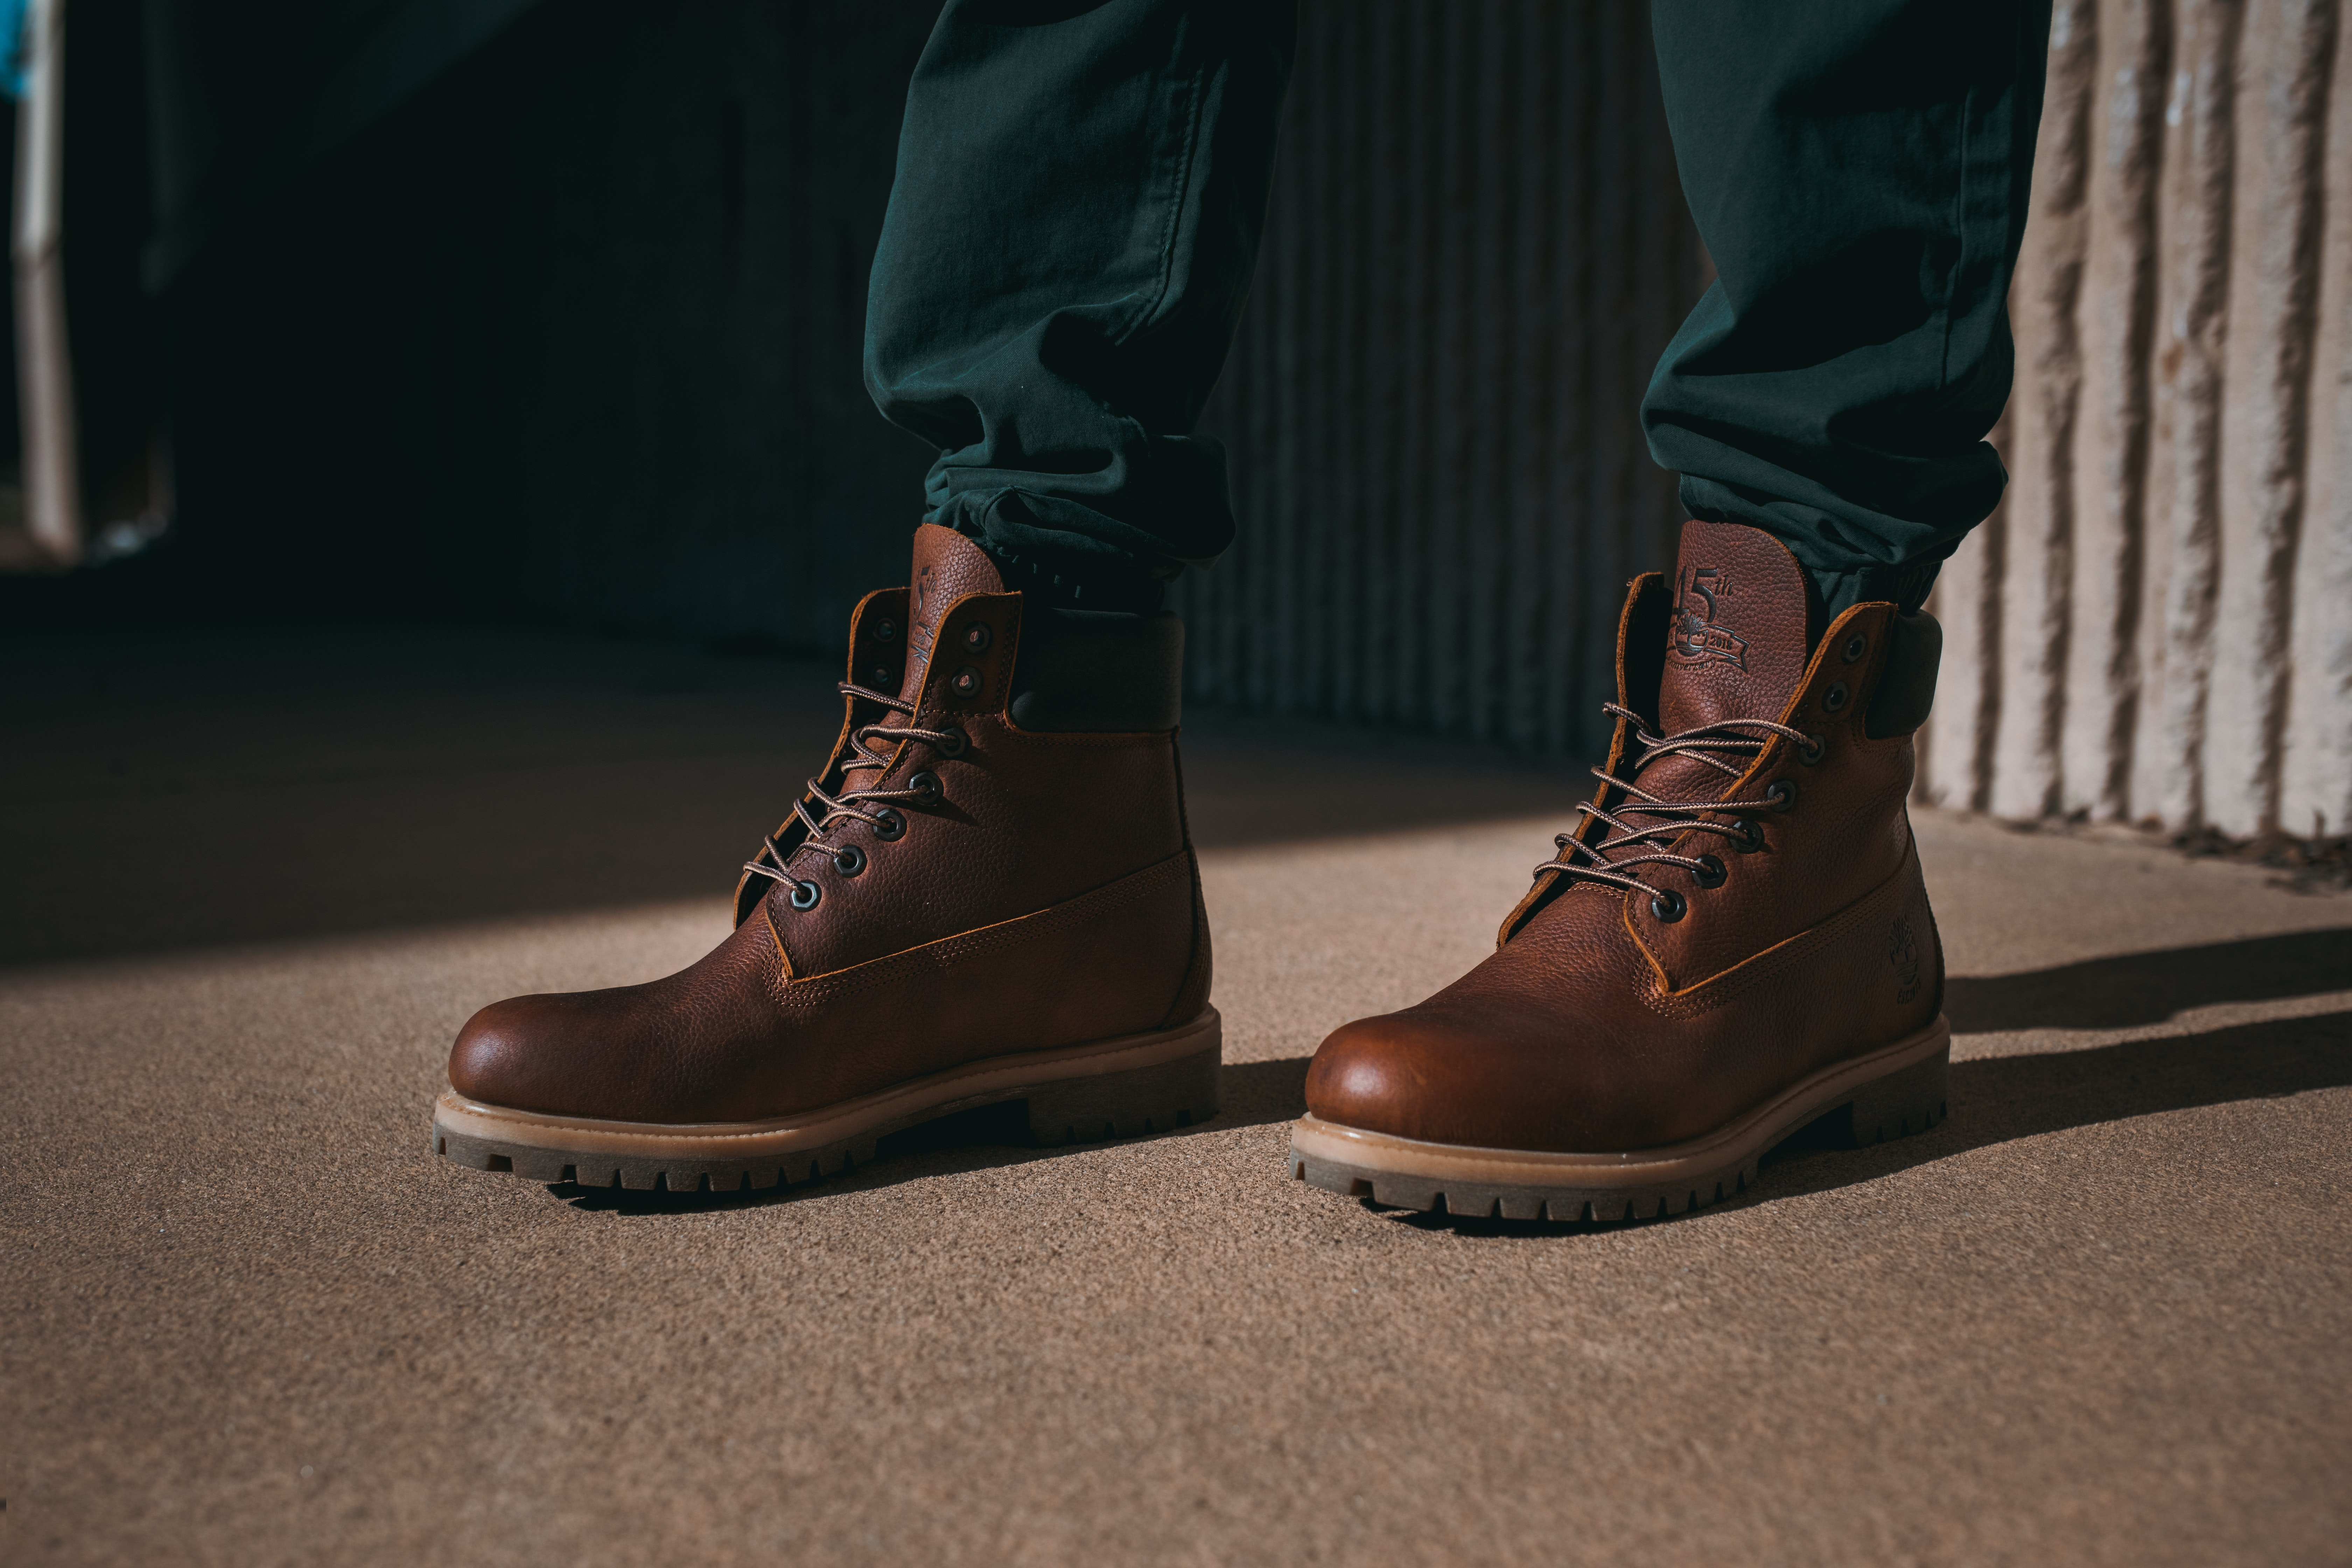 A pair of brown Timberland boots